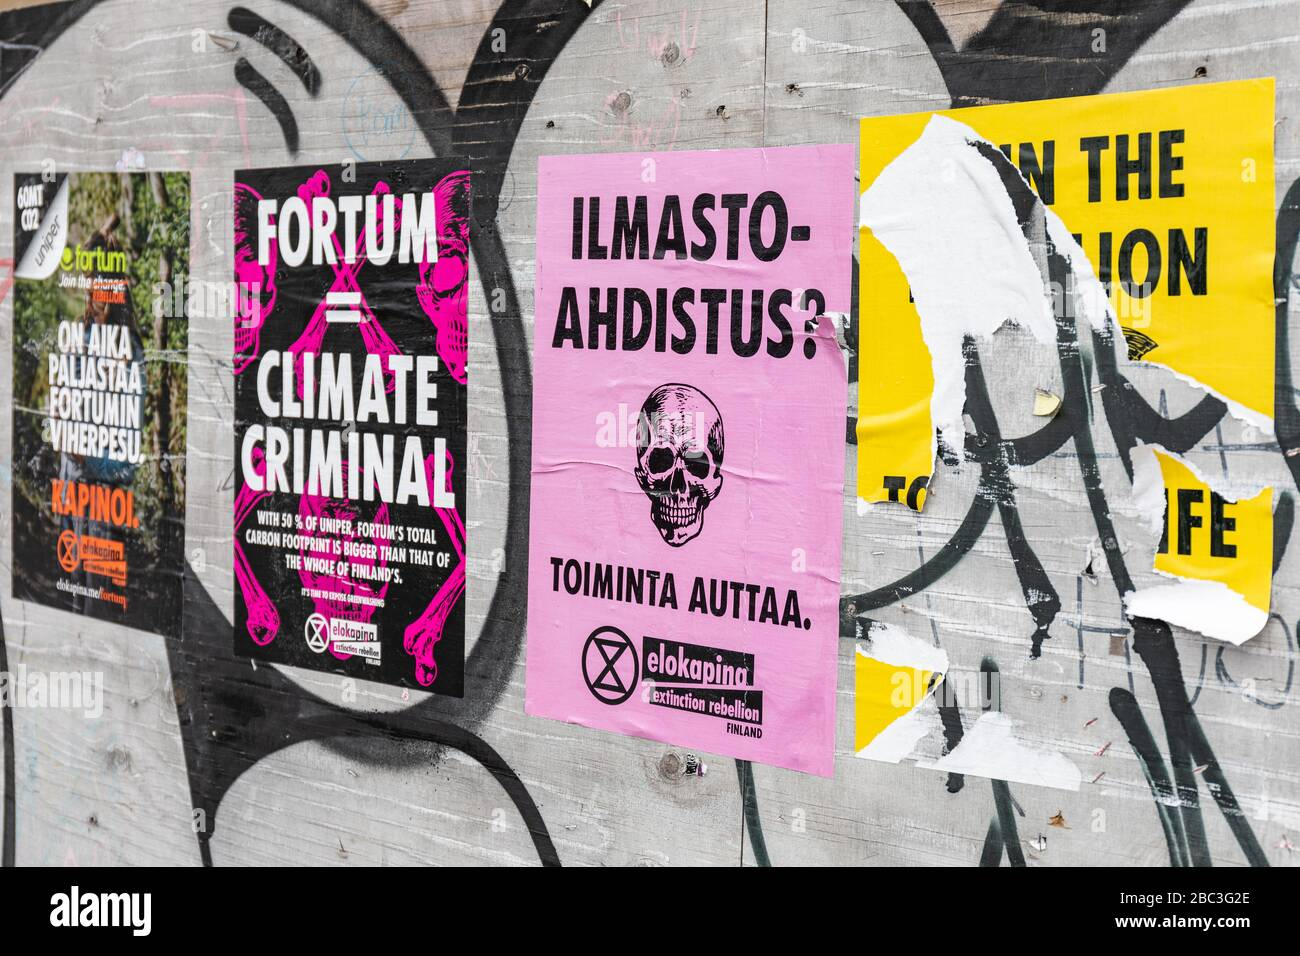 extinction-rebellion-finland-poster-prot